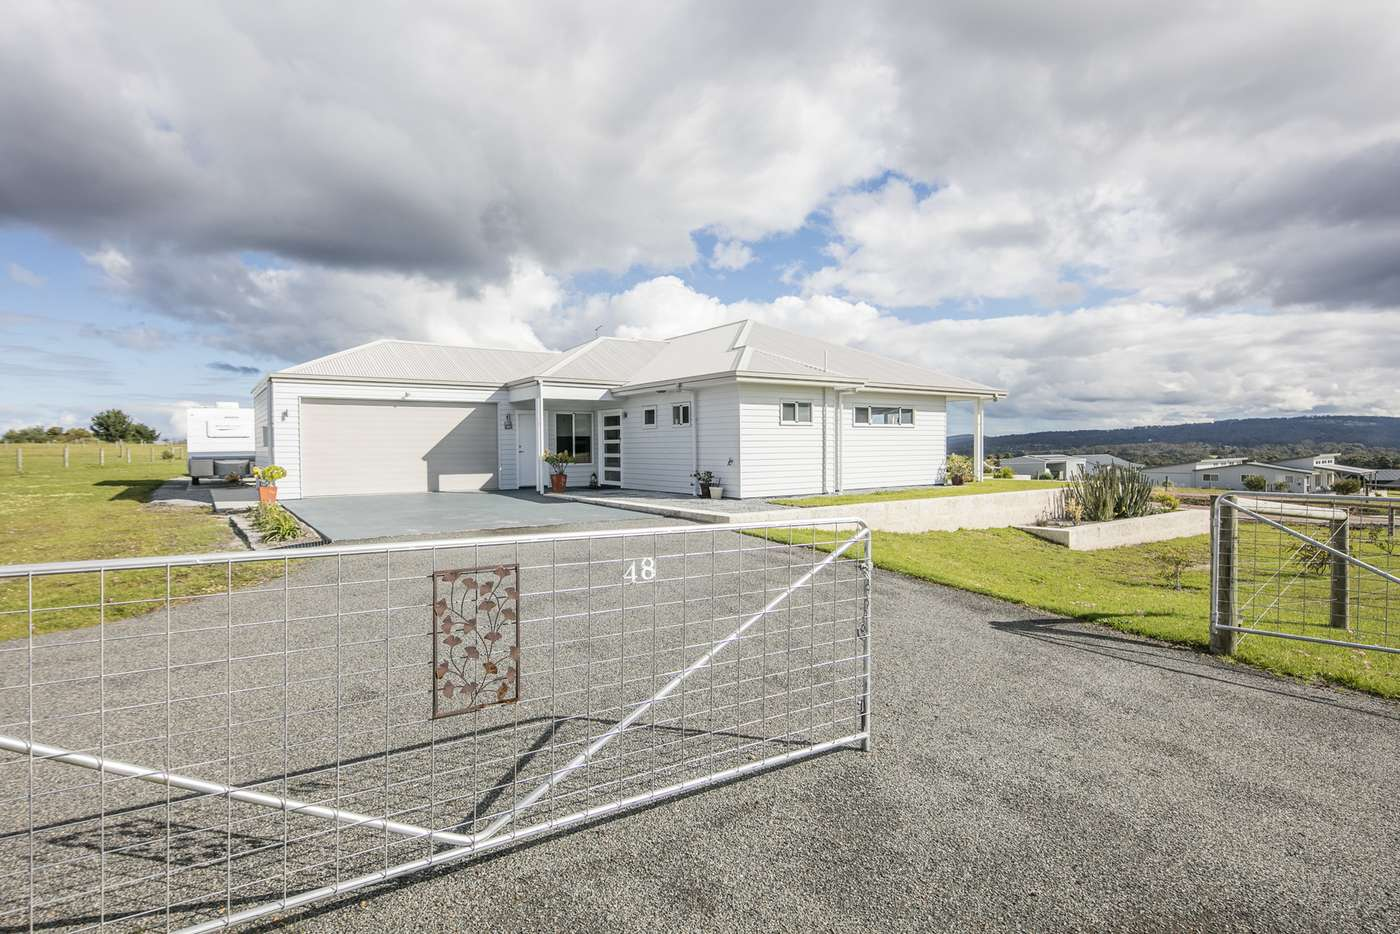 Main view of Homely house listing, 48 Triggerplant Loop, Denmark WA 6333